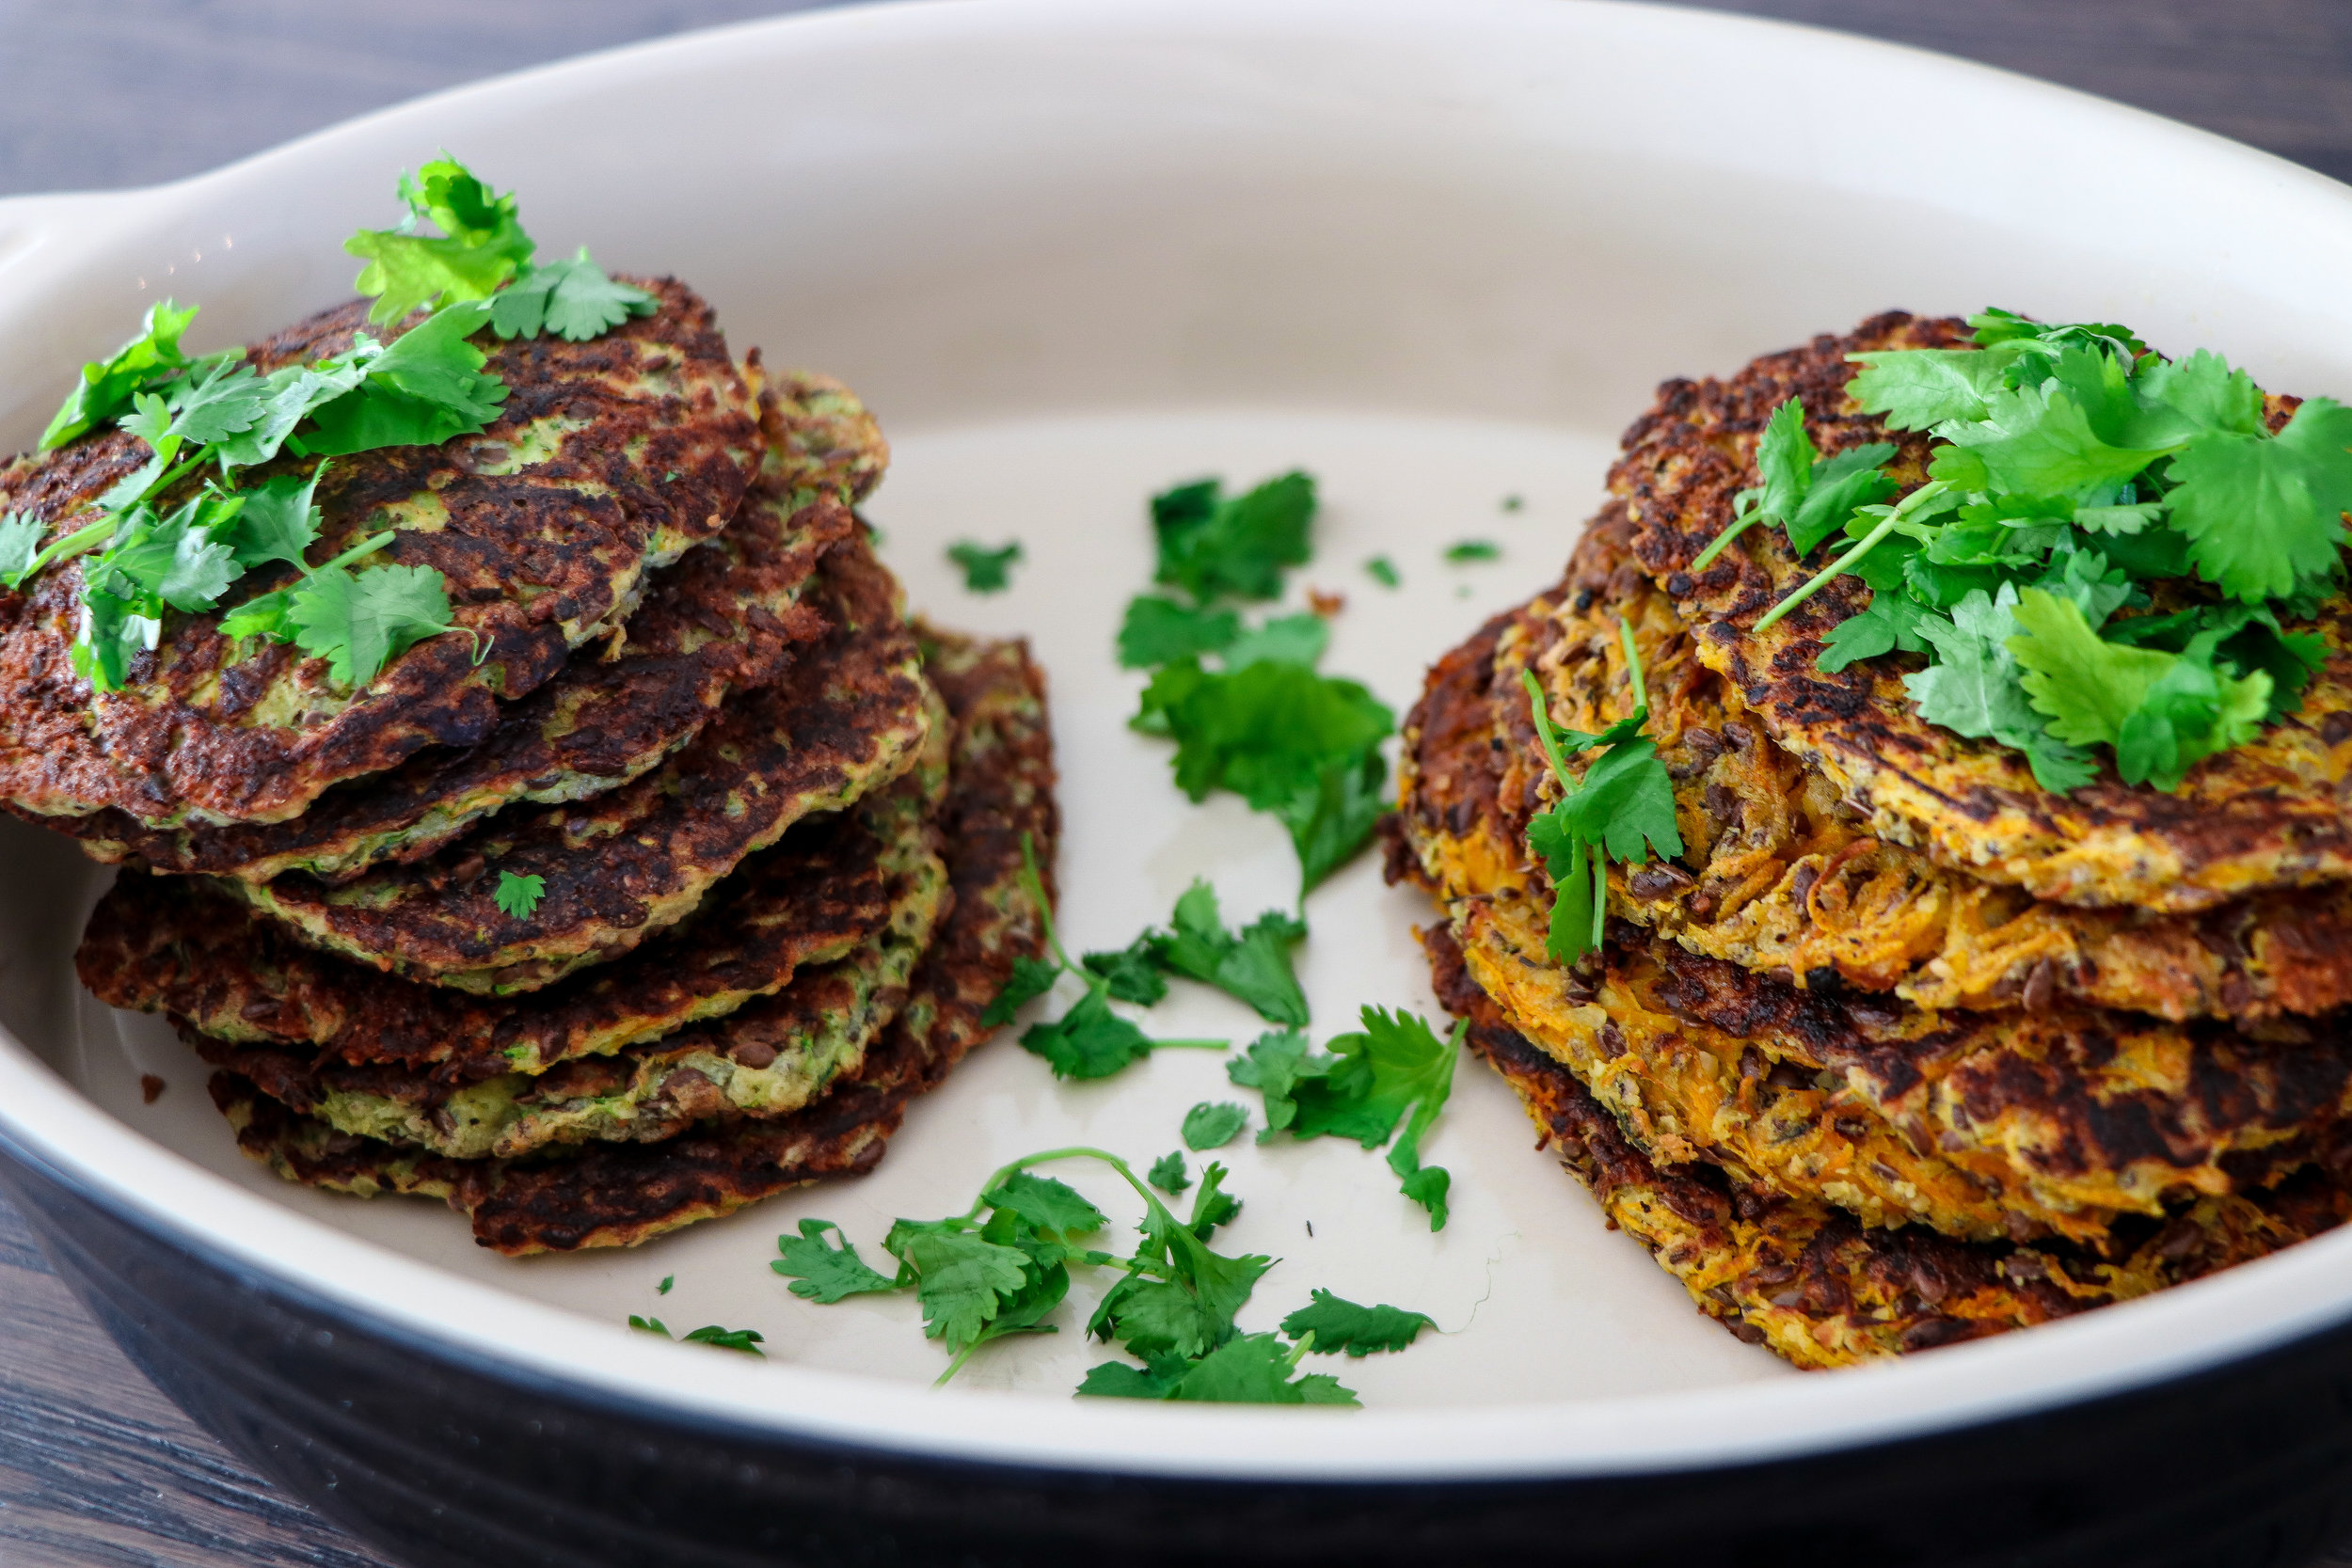 Healthy carrot and zucchini crepes dinner photo by Linda Haggh.jpg